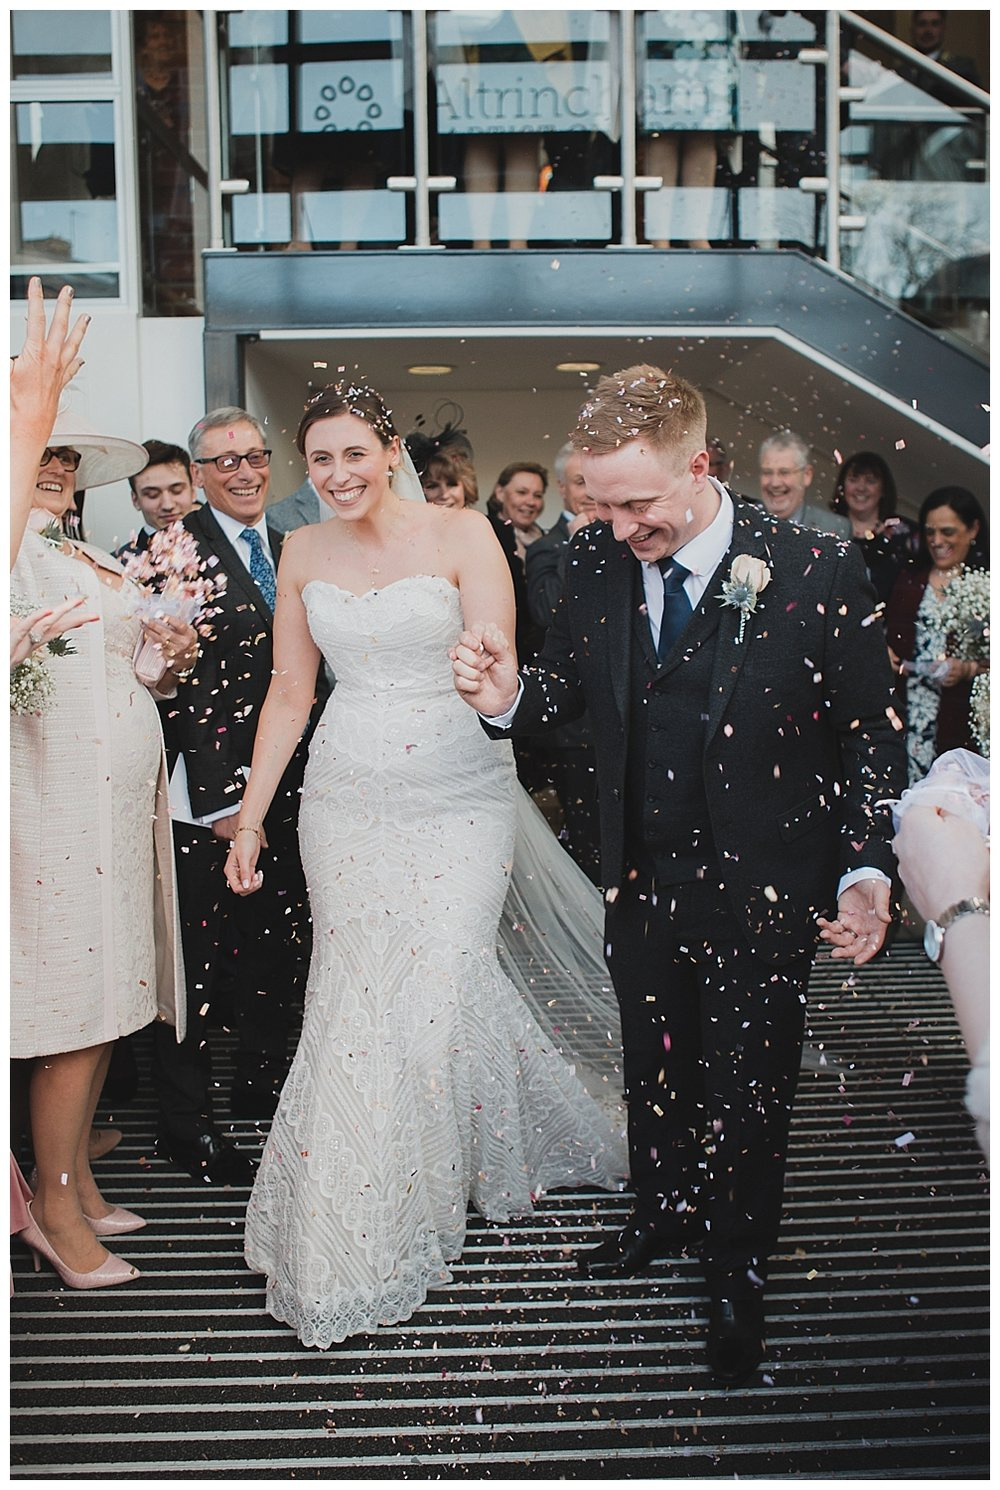 Bride and groom exit in a confetti storm at Altrincham Baptist Church.